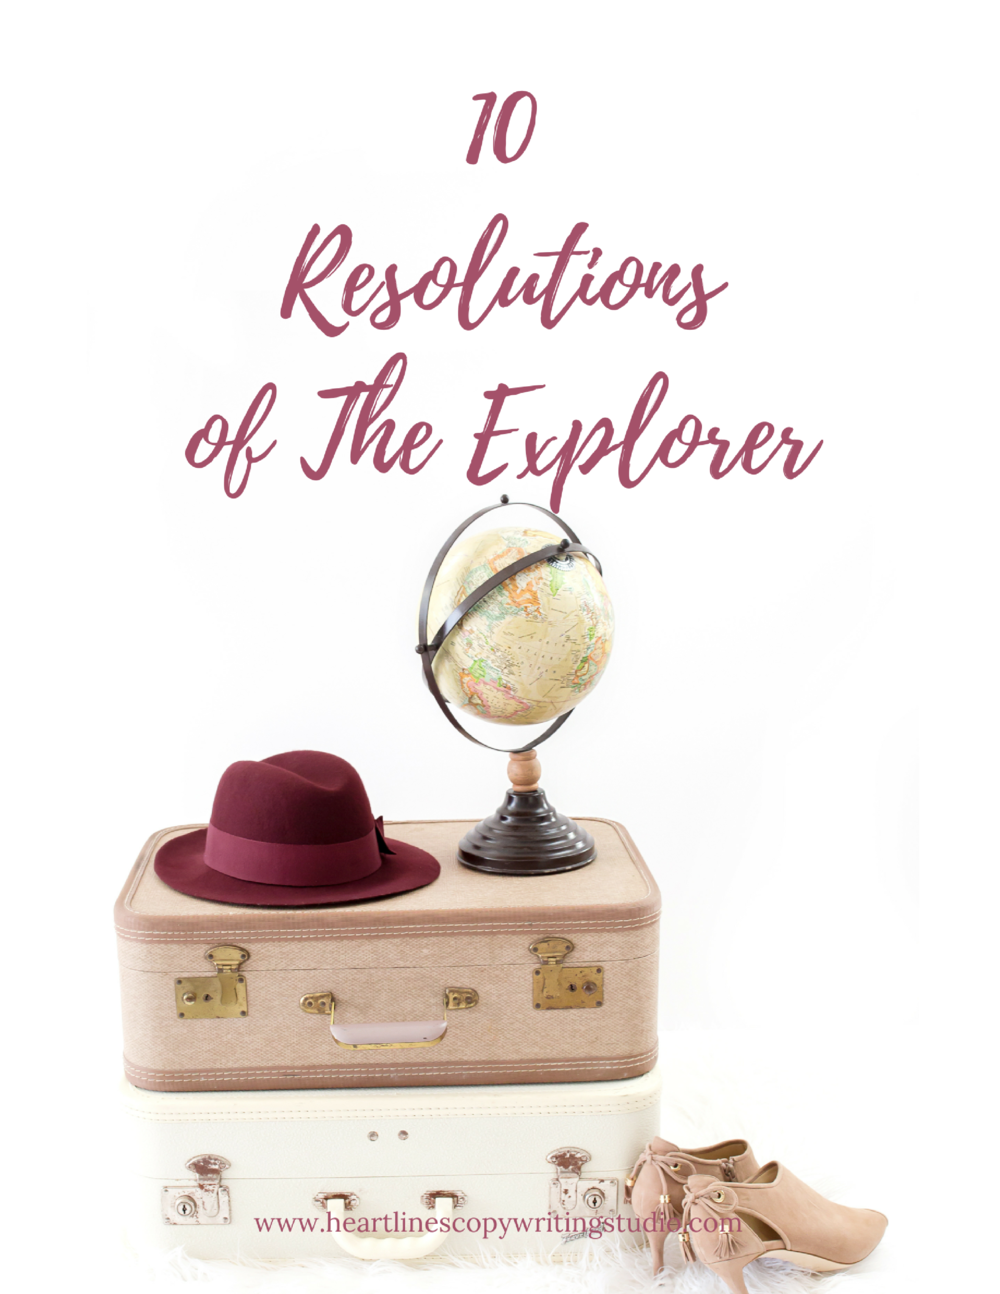 Download the PDF version of The 10 Resolutions of The Explorer right here.